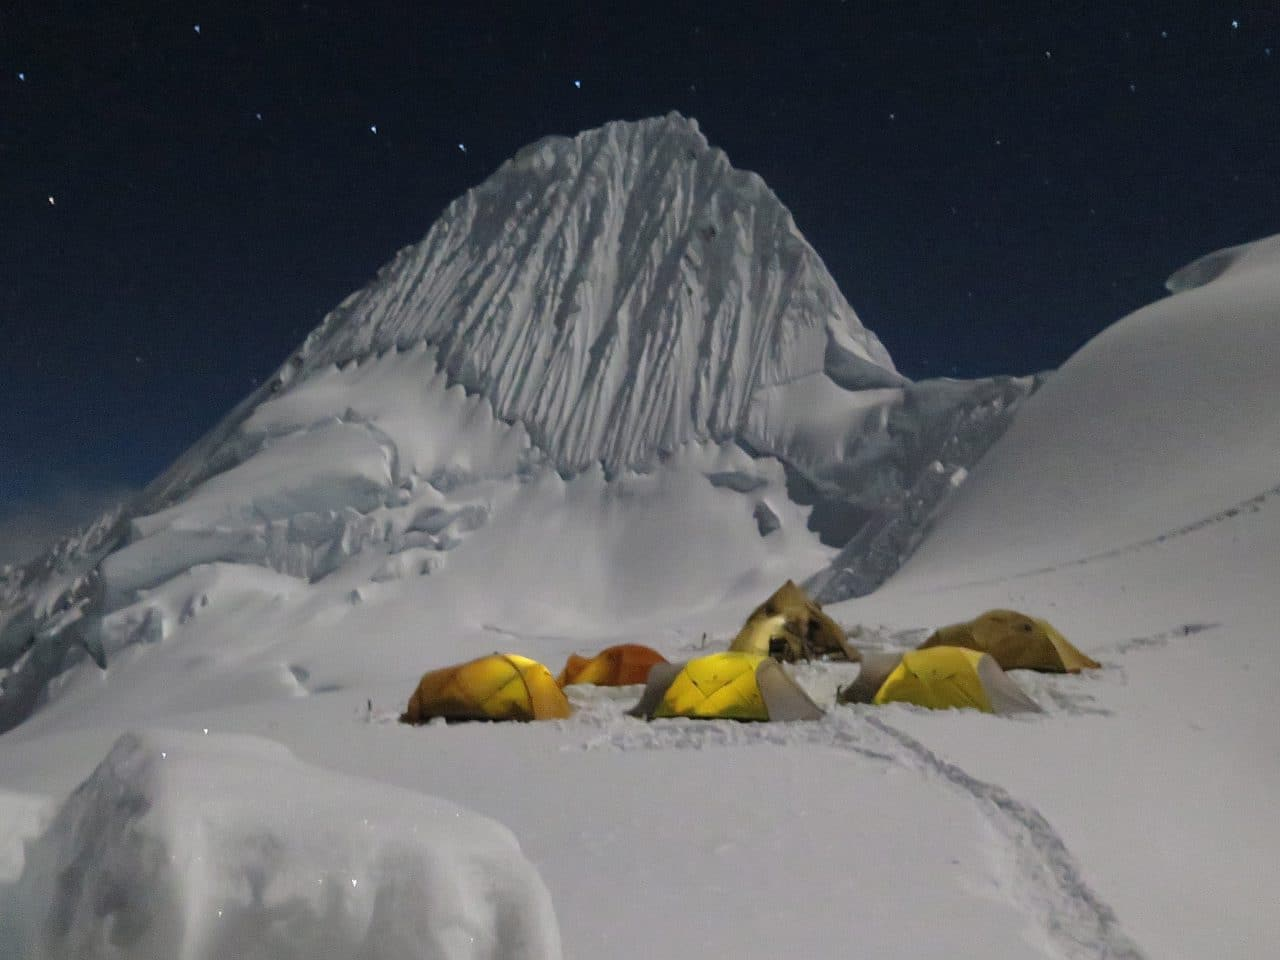 perou-helyum-guides-de-montagne-expedition-camp-1-alpamayo